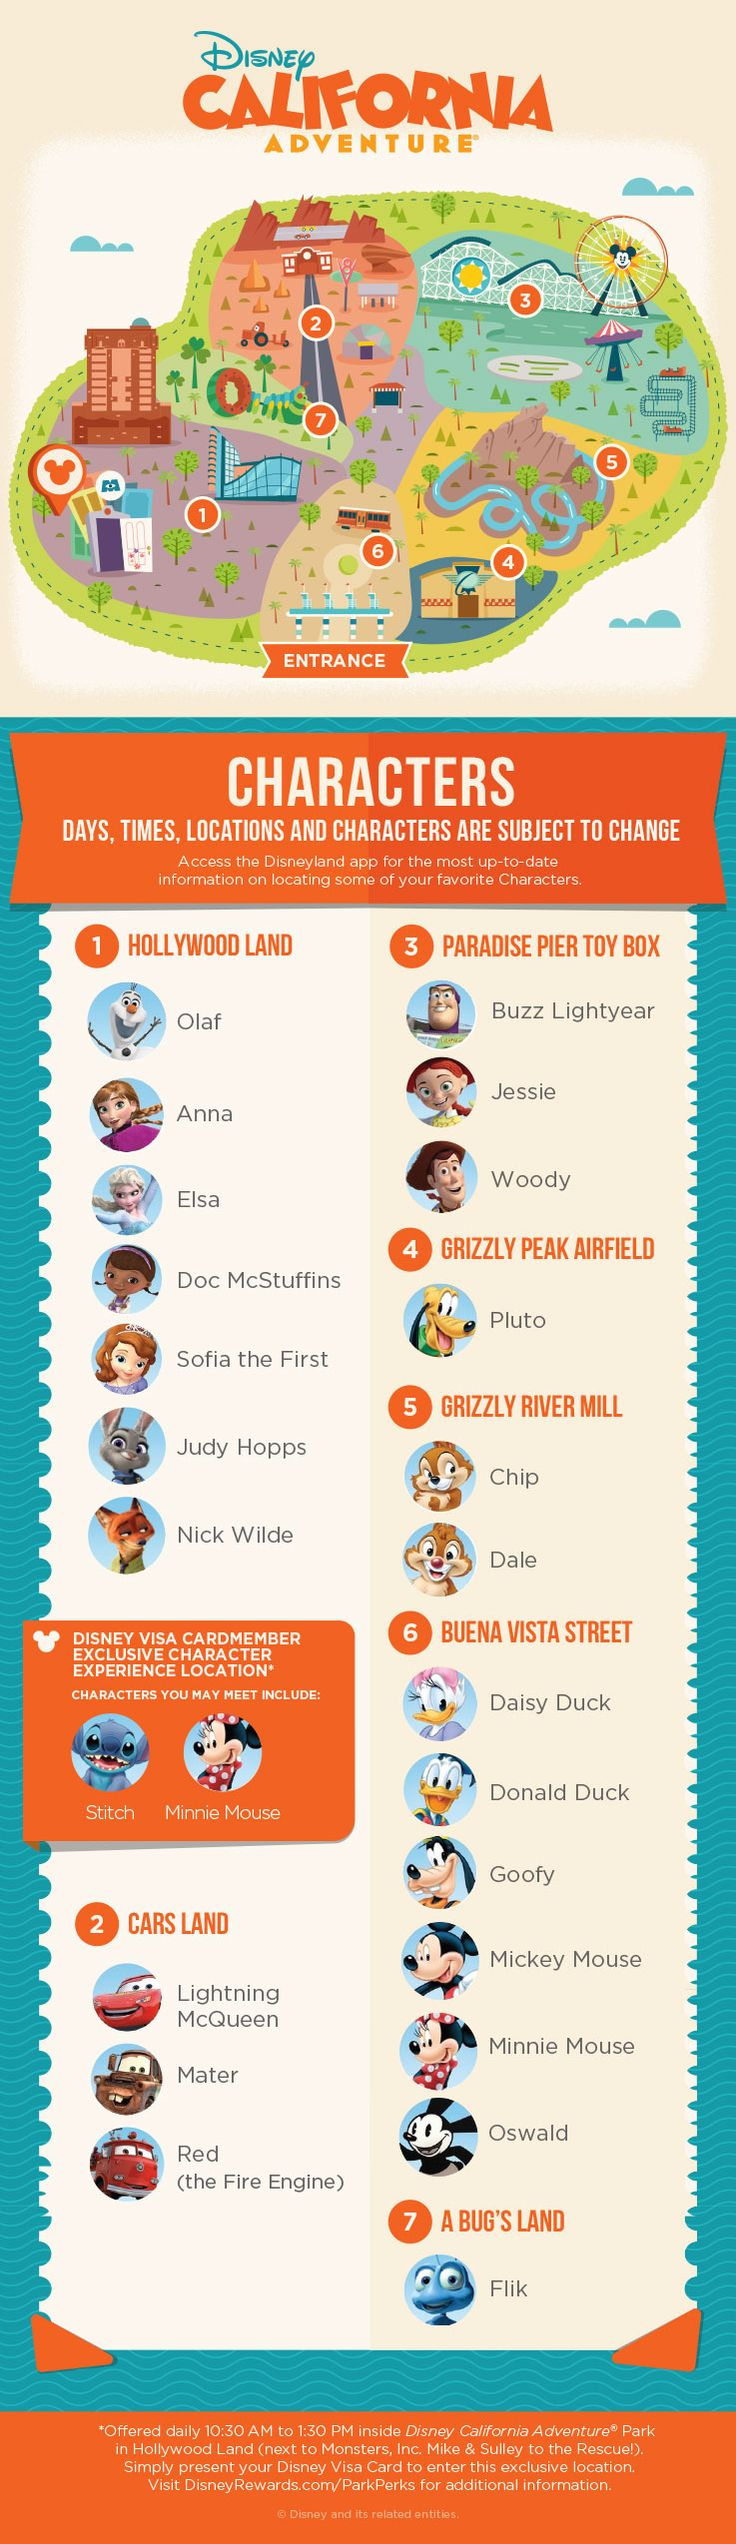 Learn about the Characters you can meet at Disney California Adventure® Park and where to find them with our guide!